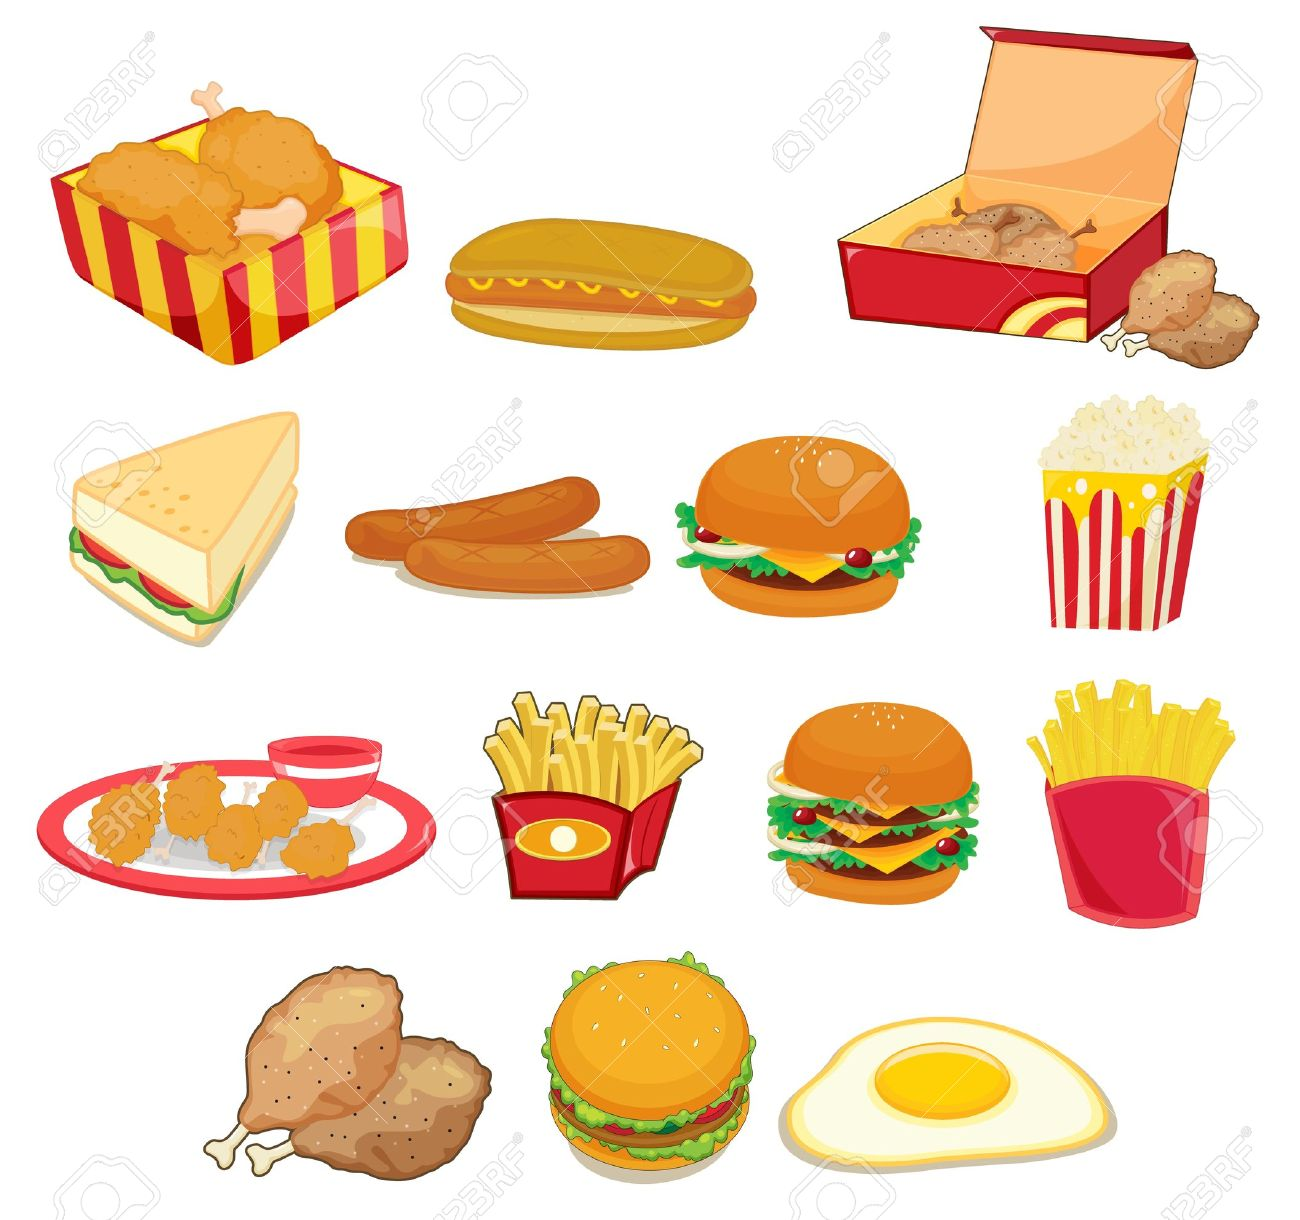 Illustration Of Junk Food On W Royalty Free Cliparts Vectors And: clipartion.com/free-clipart-16413